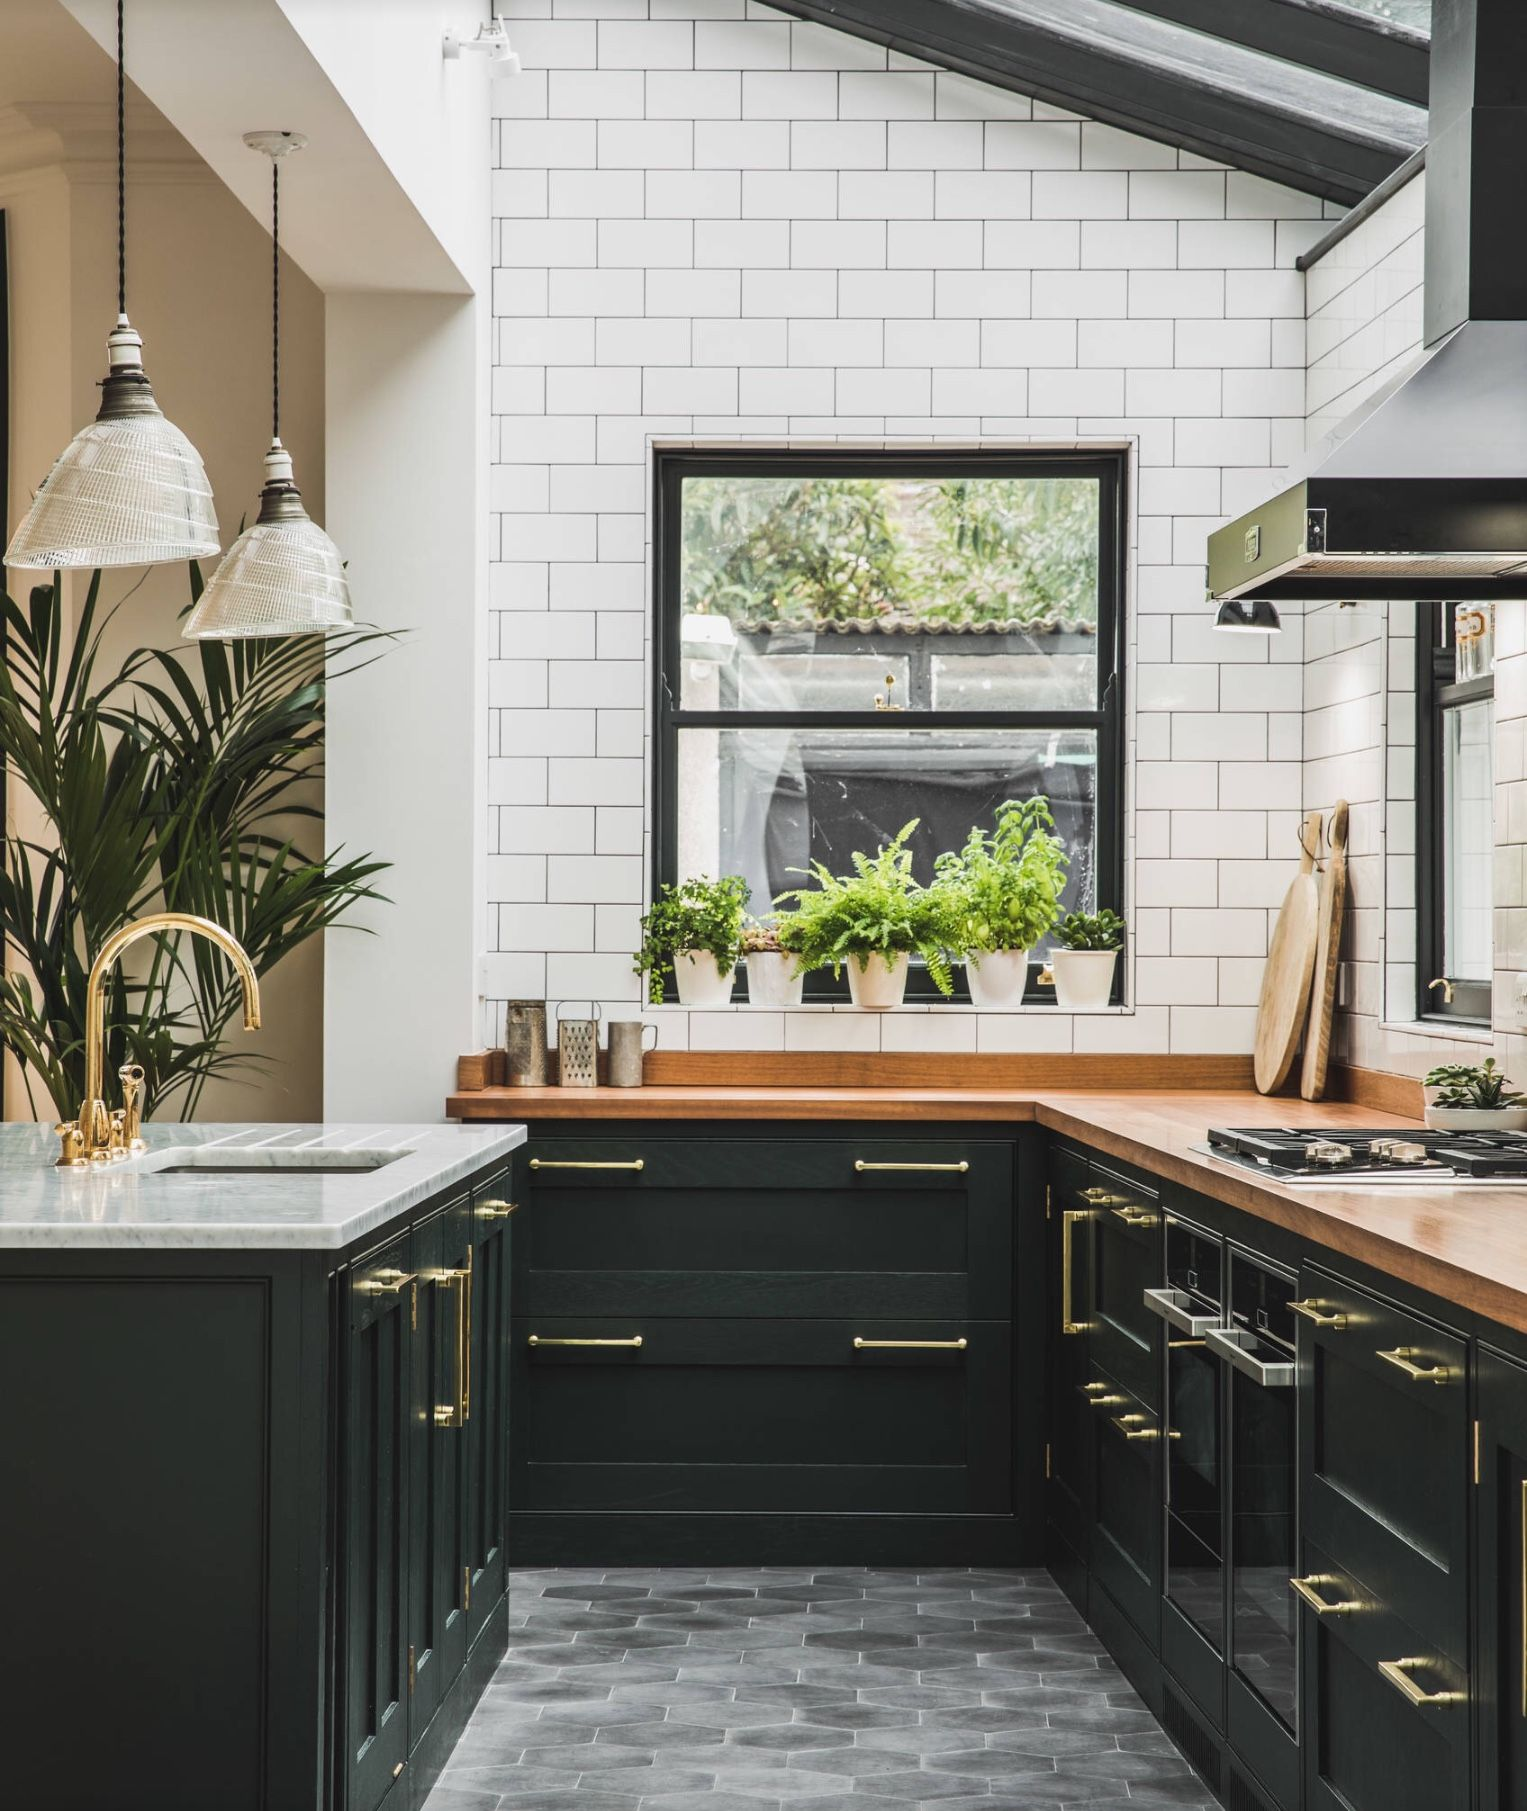 Loving The Fabulous Black Cabinetry With Butcher Block Tops White Tiled Walls Awesome Fixtures Kitchen Design Kitchen Remodel Small Home Decor Kitchen